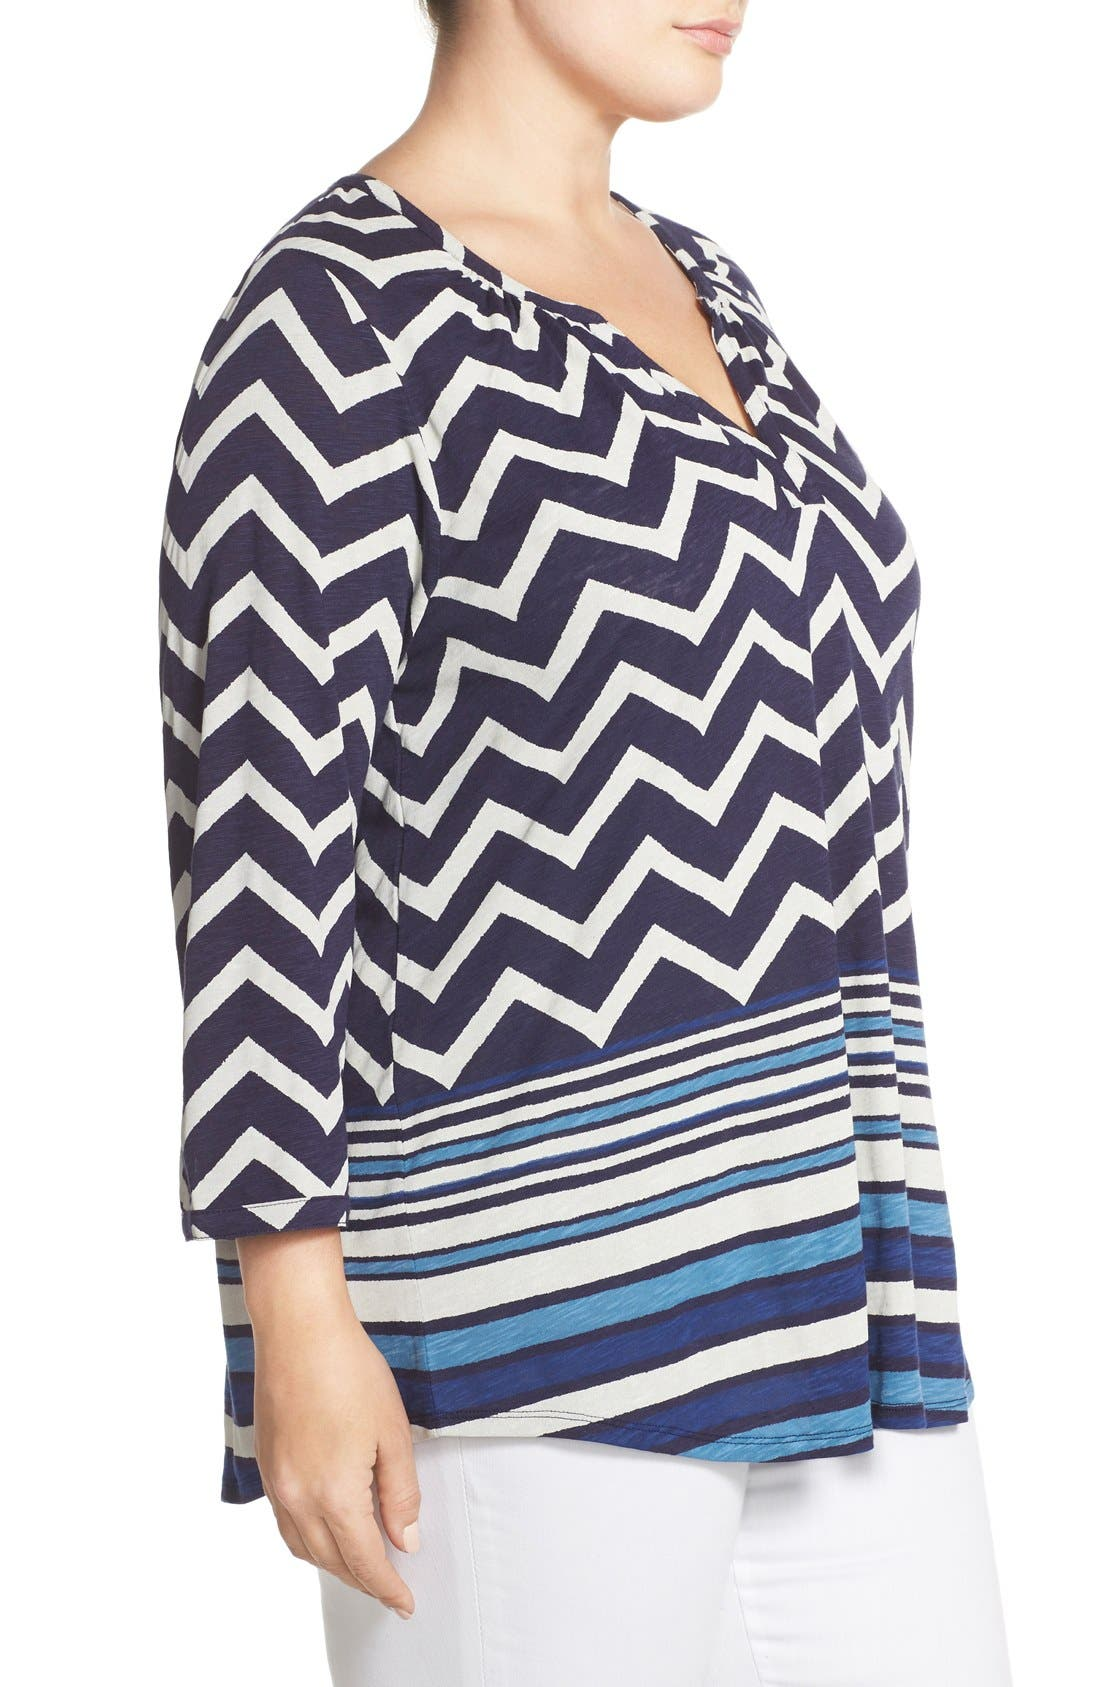 LUCKY BRAND, Chevron Stripe Split Neck Top, Alternate thumbnail 2, color, 400